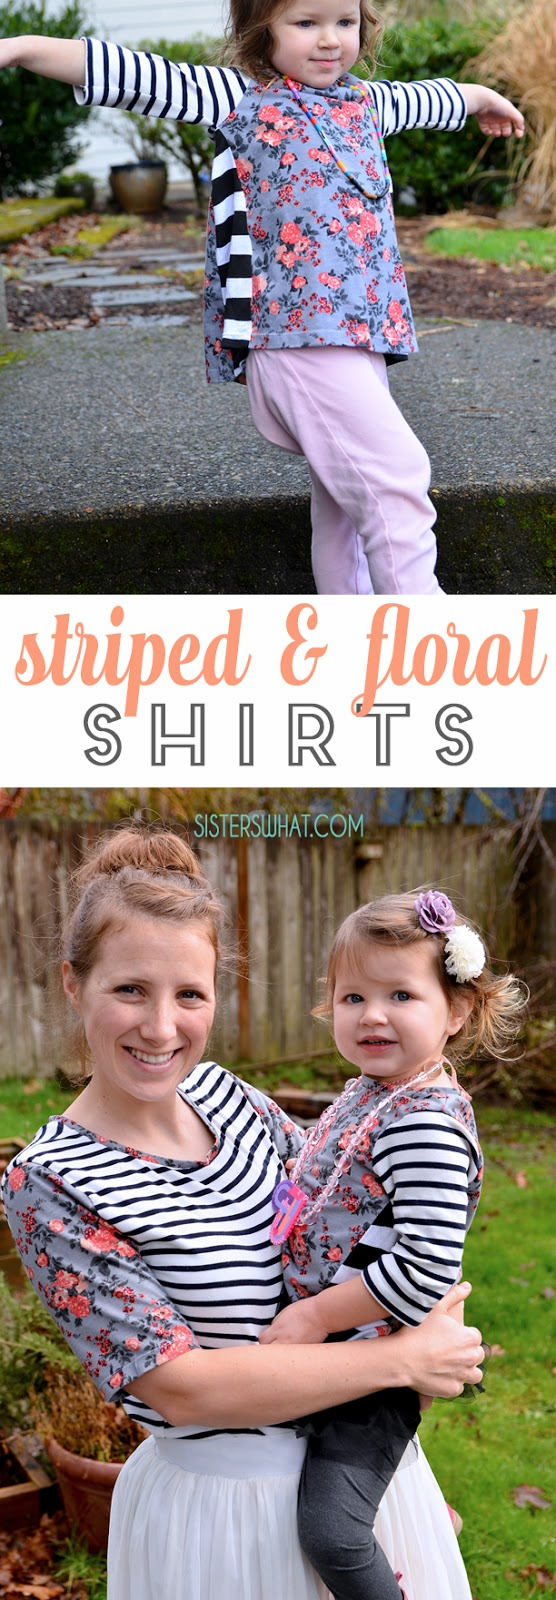 such an easy shirt refashion with striped and floral fabric! simply cut off an old shirt sleeves and add new sleeves with a different pattern fabric!!